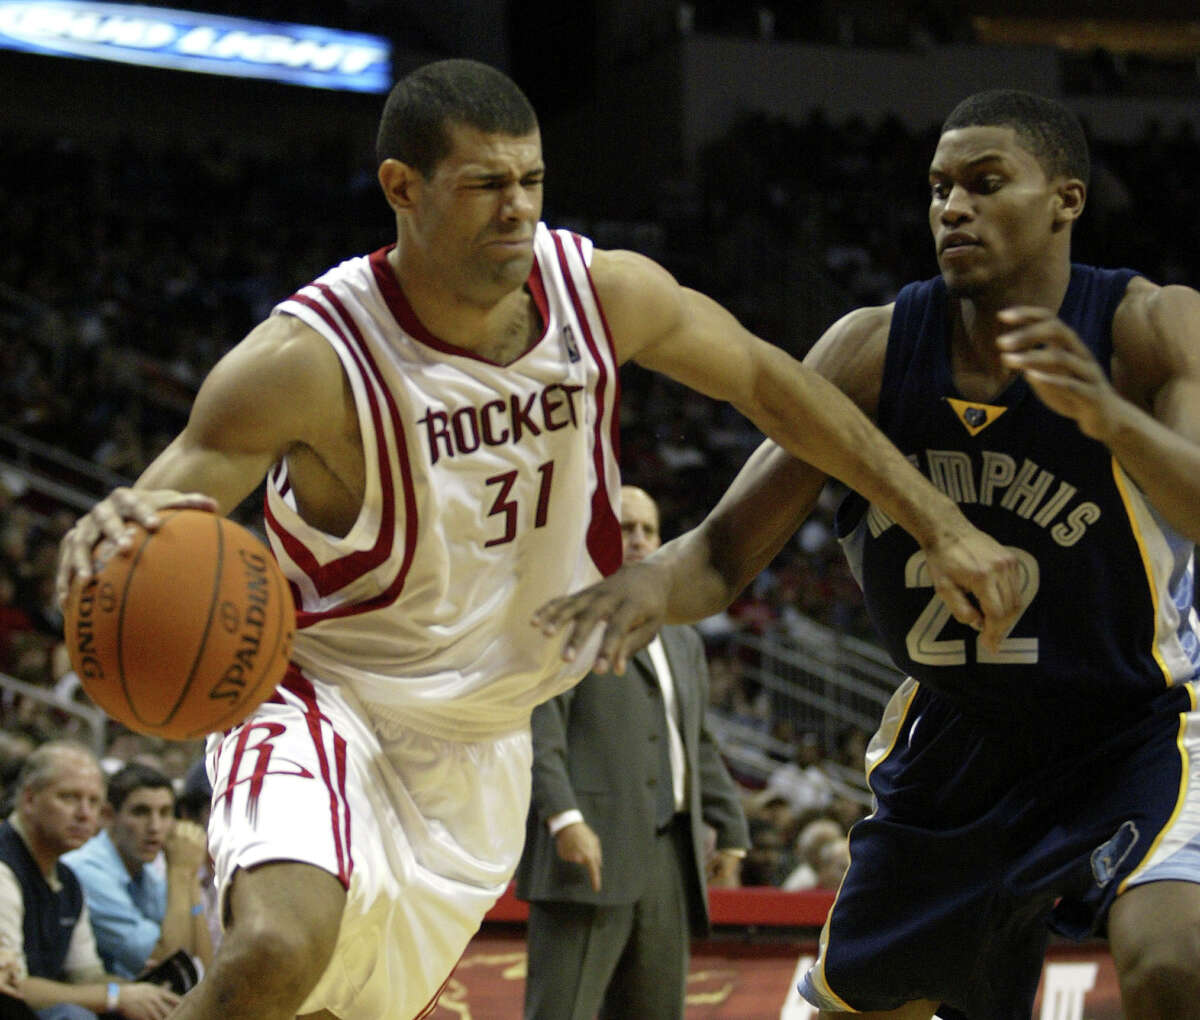 The Rockets drafted Rudy Gay (right) in 2006 and then traded him to Memphis in a deal that brought them Shane Battier (31).